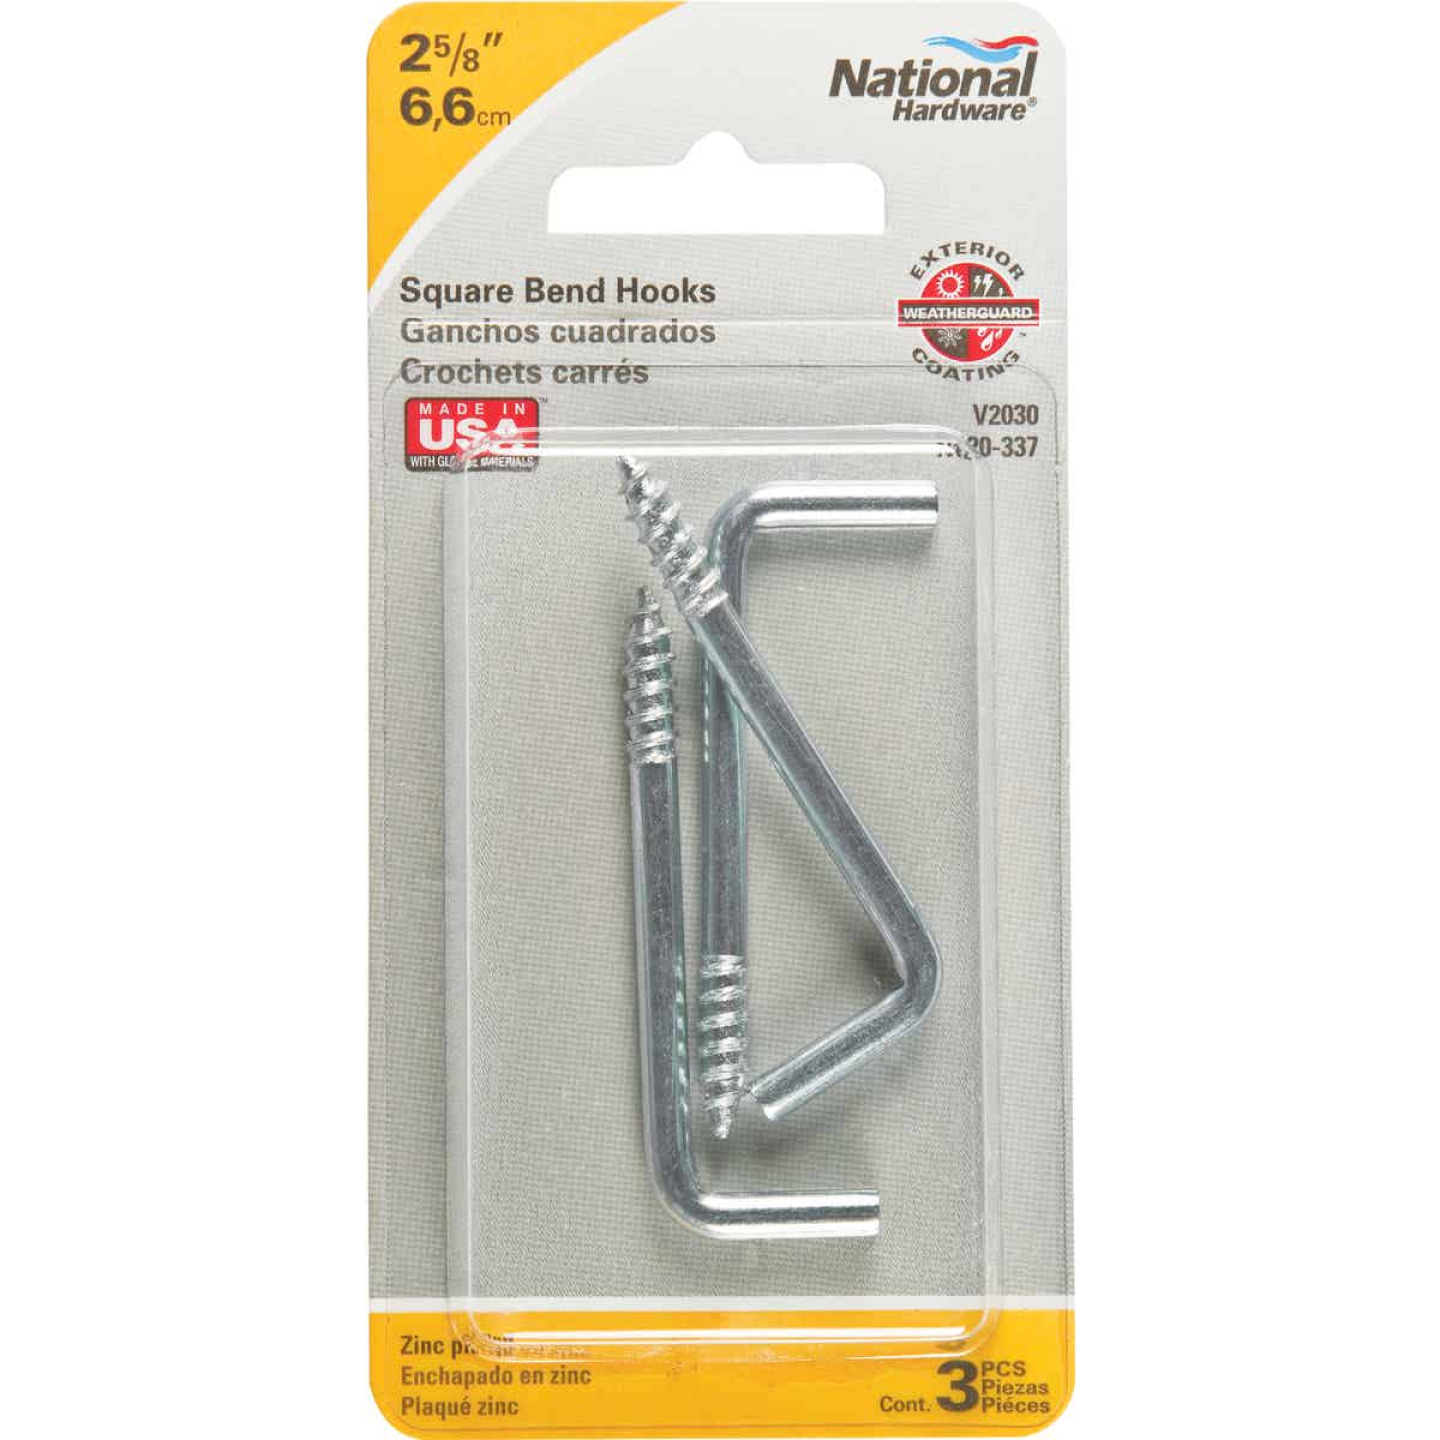 National 2030 Series #106 Square Bend Screw Hook Shoulder Hook (3 Count) Image 2